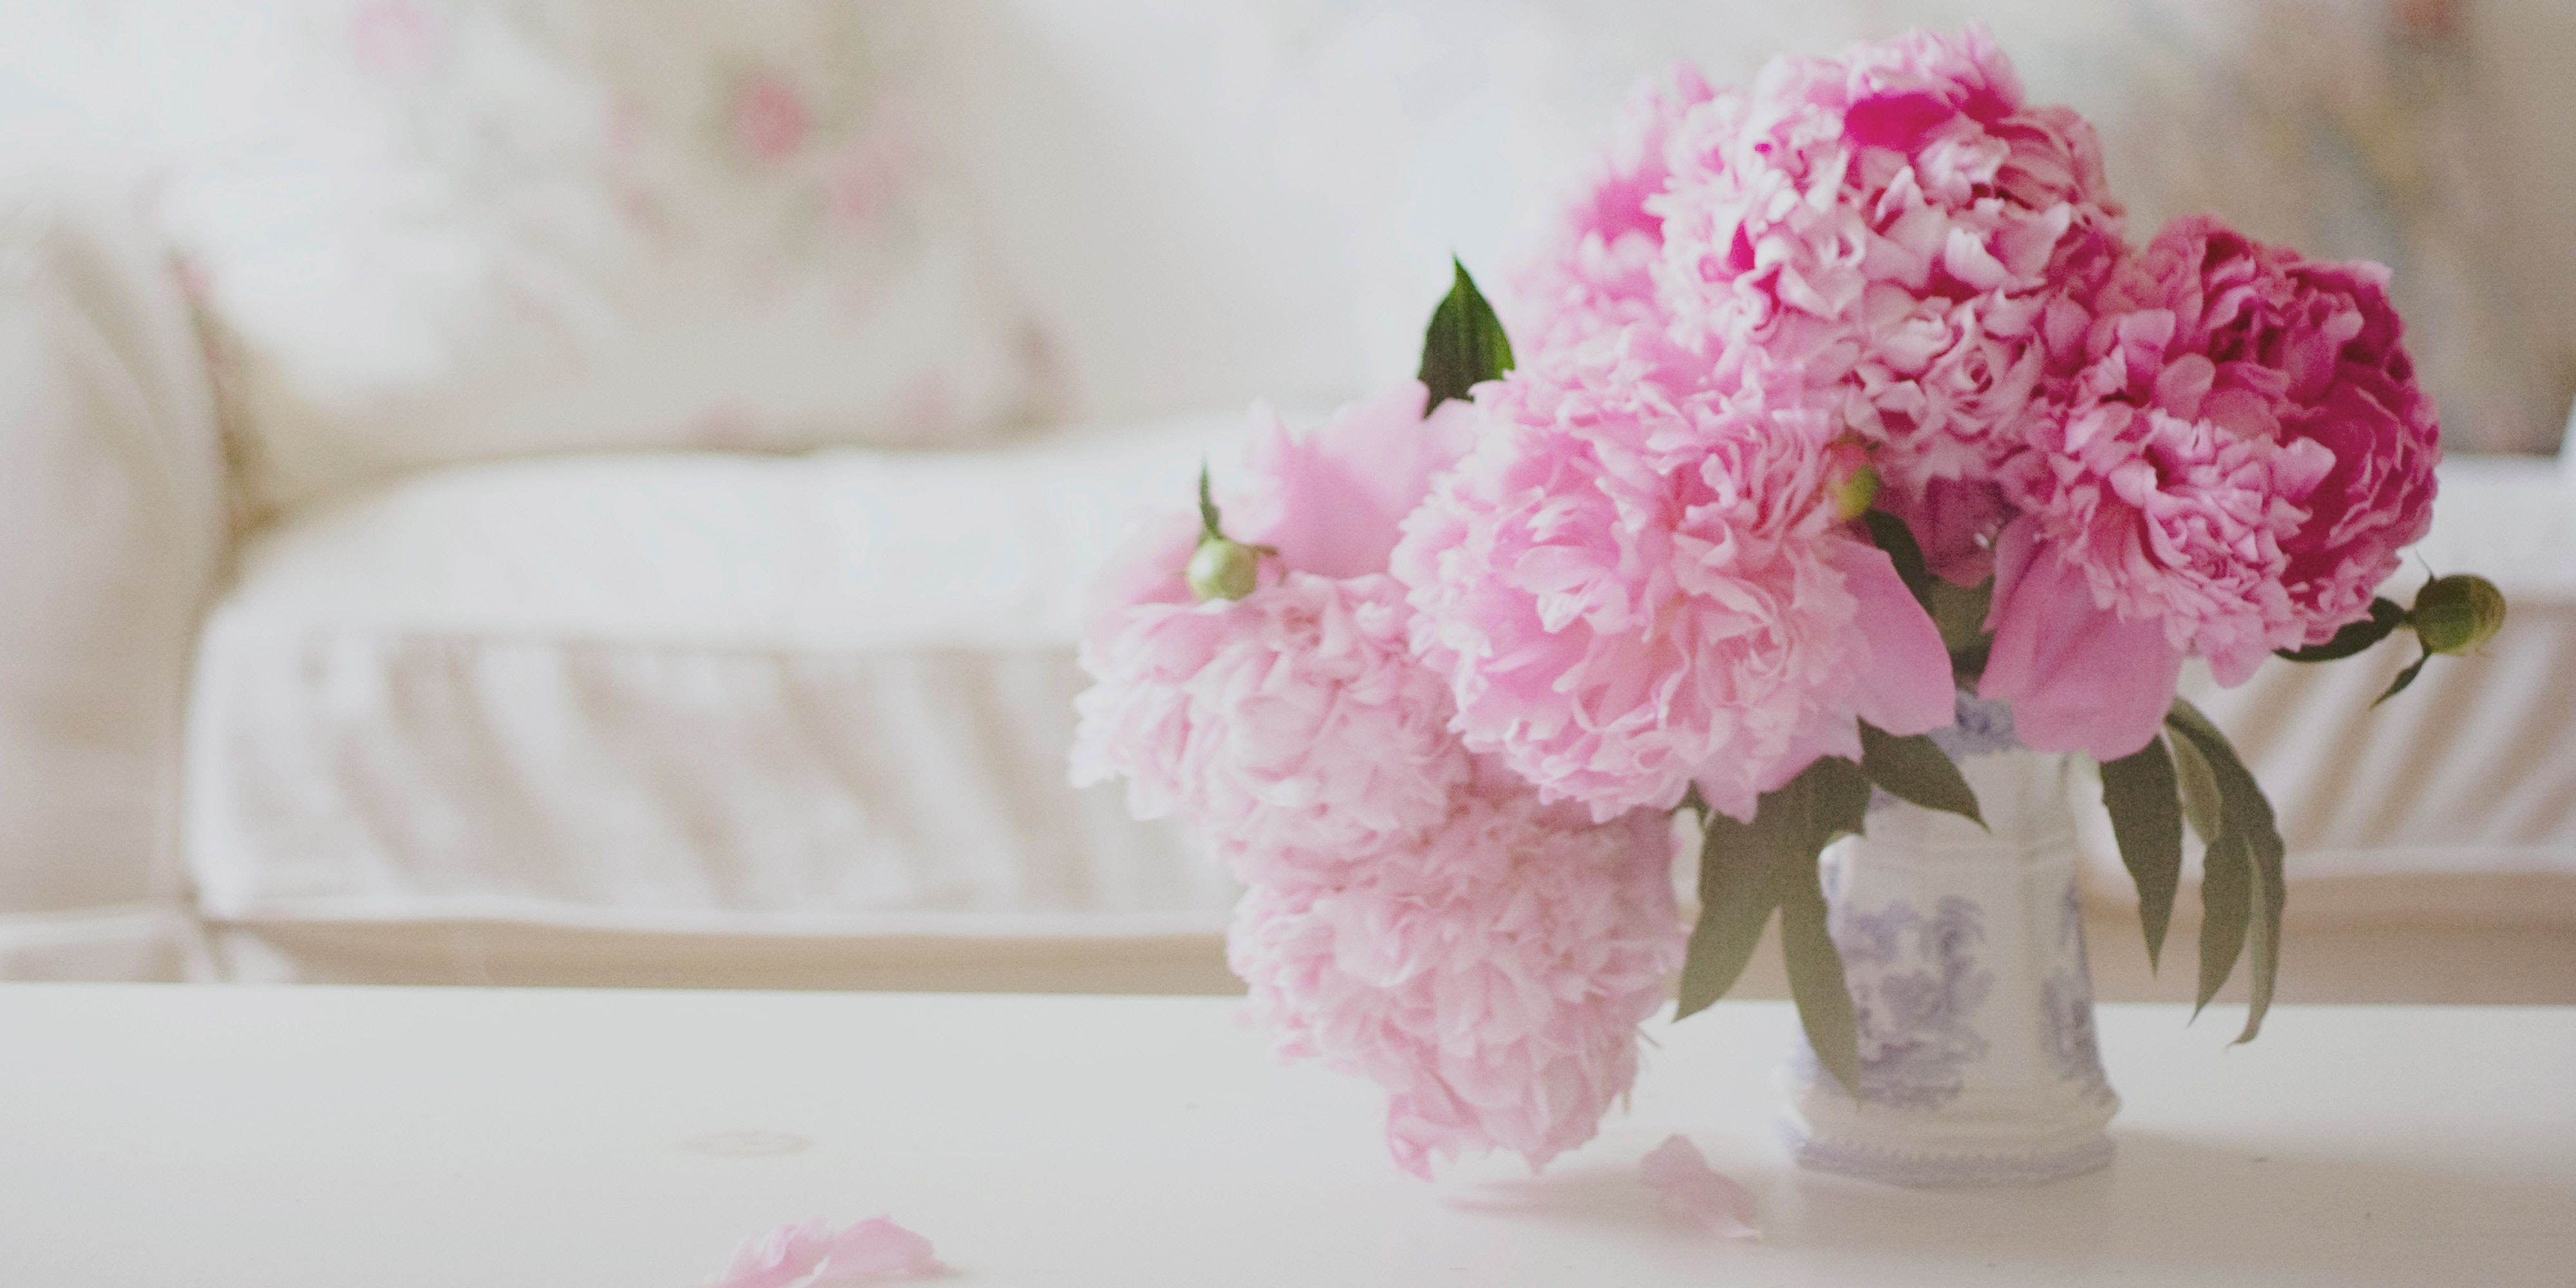 Pianese Flowers 12 Facts About Peonies History Of The Peony Flower